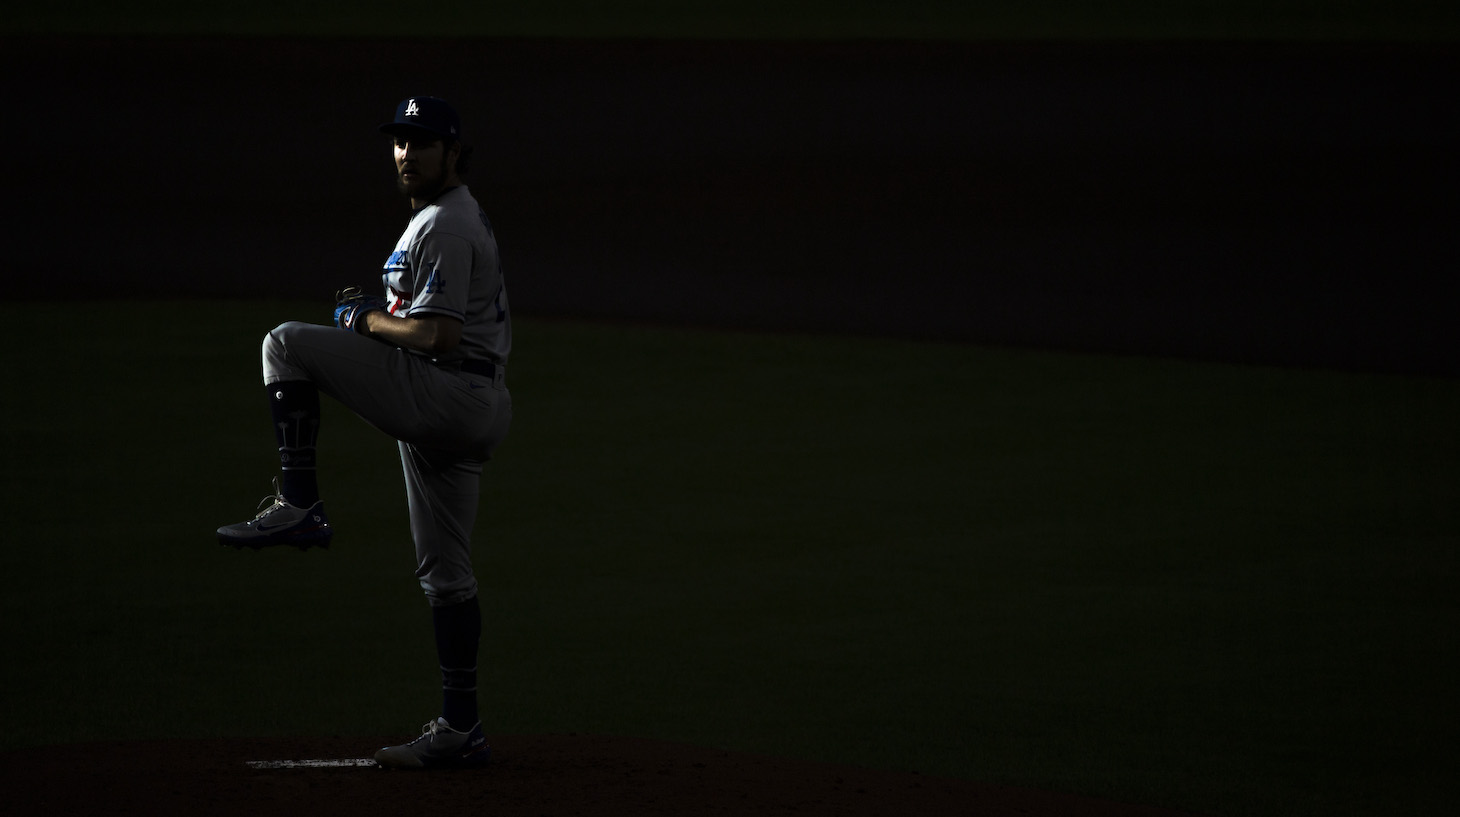 Trevor Bauer of the Los Angeles Dodgers winds up to pitch during the first inning against the Houston Astros at Minute Maid Park on May 26, 2021 in Houston, Texas.